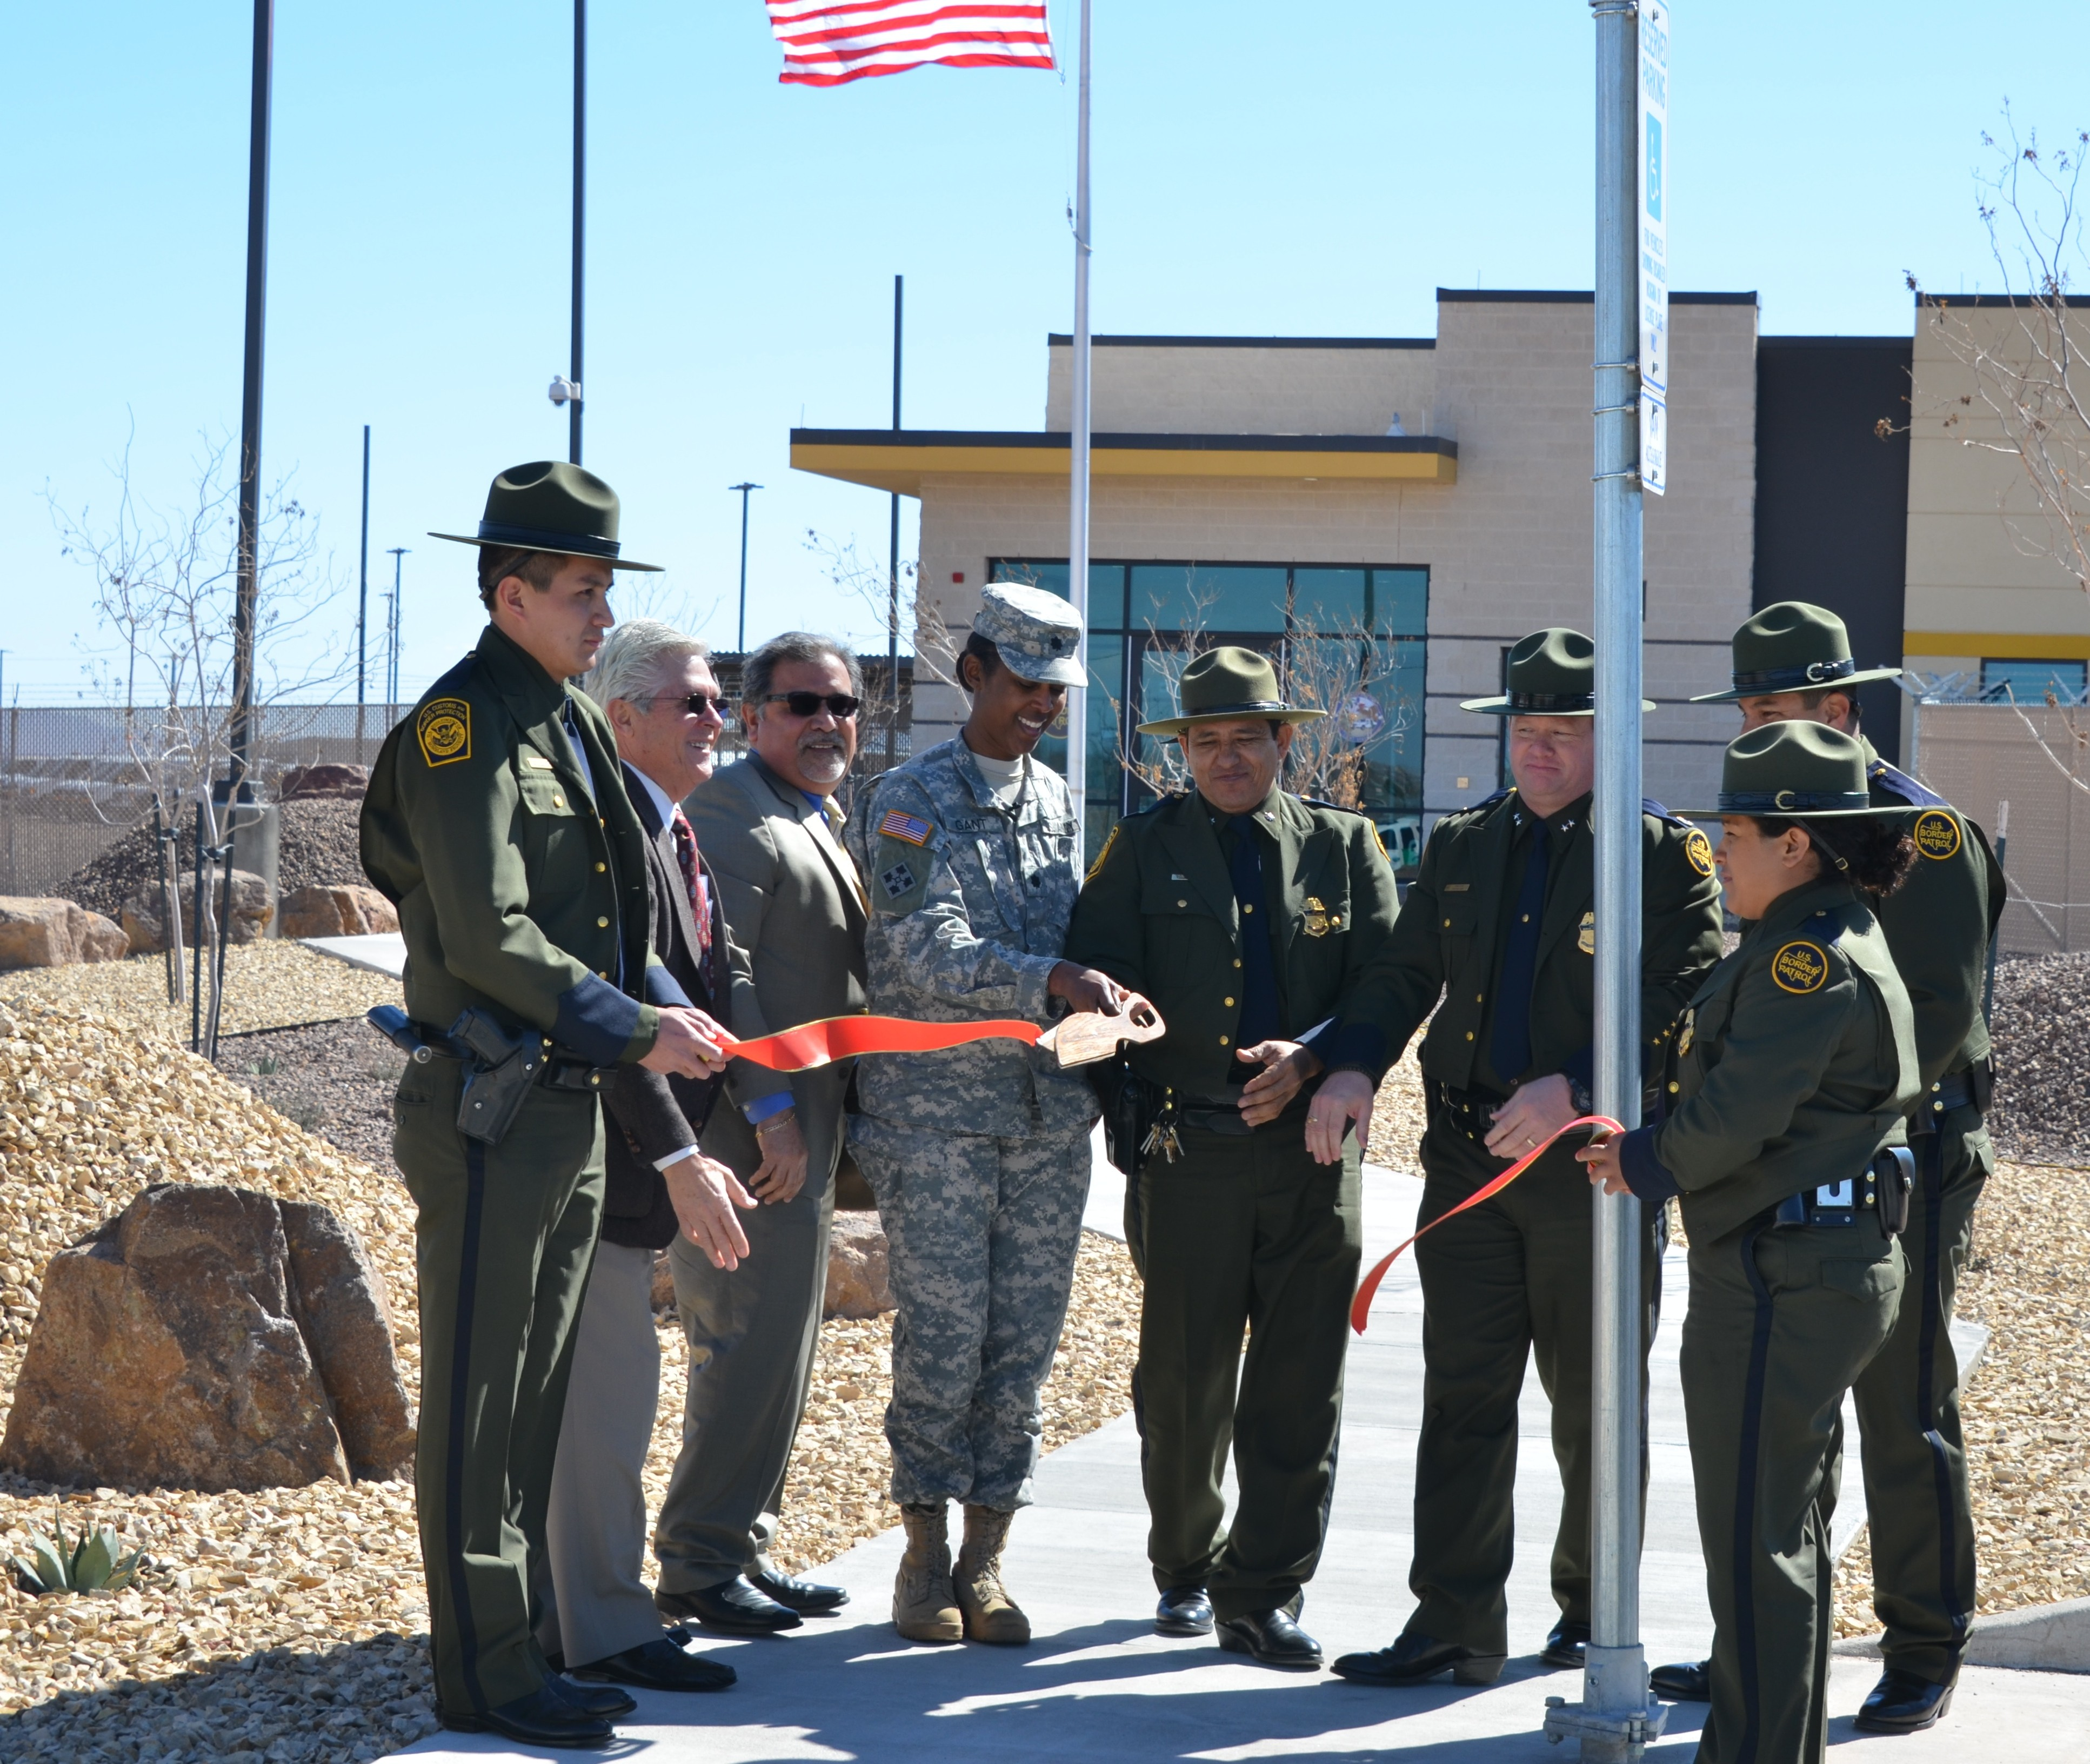 Clint (TX) United States  city photos : ... Station's Opening in Clint, Texas | Article | The United States Army